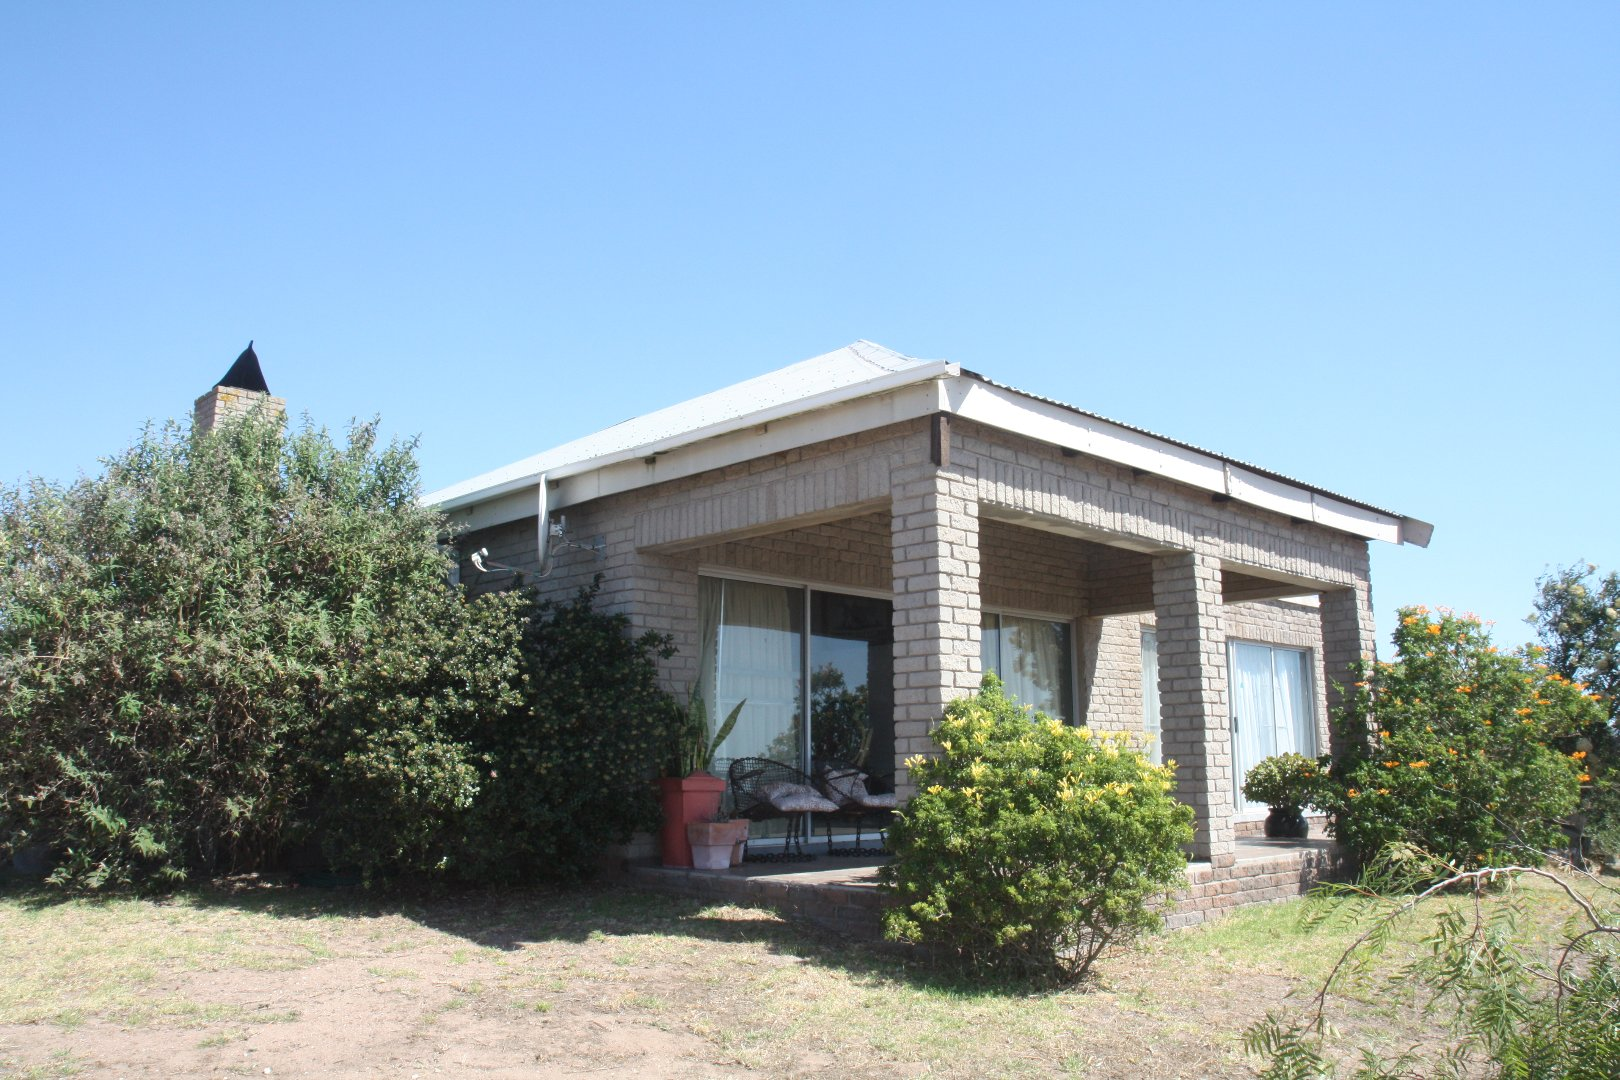 Property and Houses for sale in Trekoskraal, Farms, 3 Bedrooms - ZAR 2,650,000